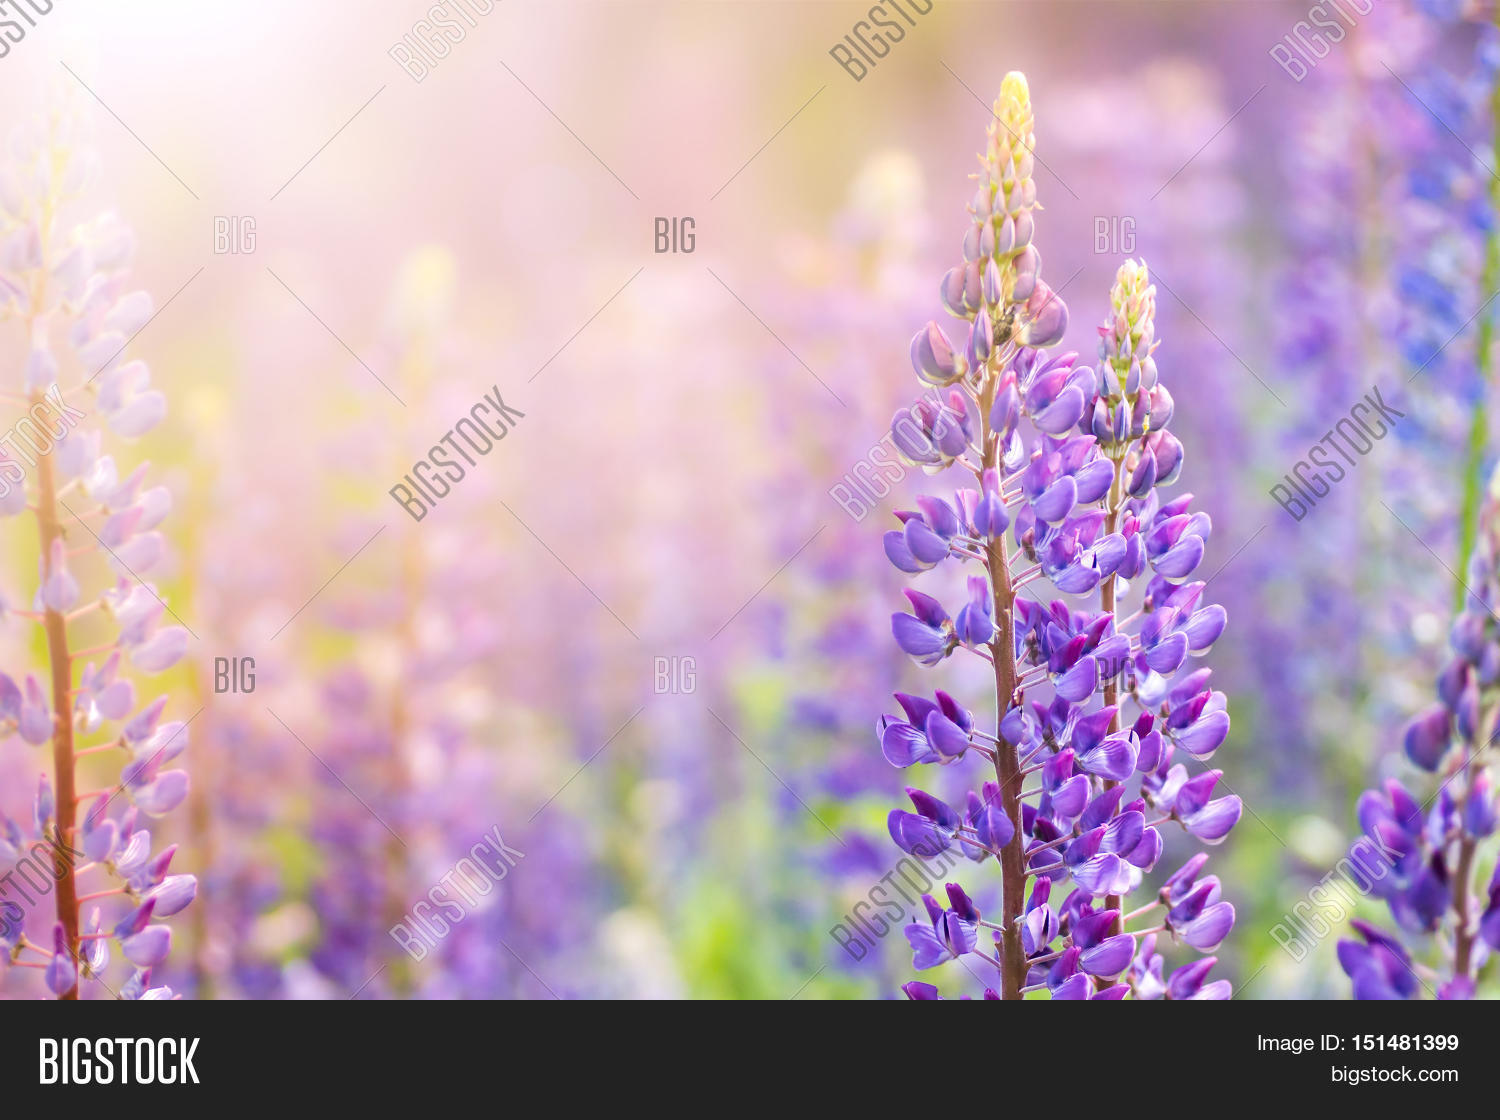 Plants for spring and summer - Blooming Lupine Flowers A Field Of Lupines Sunlight Shines On Plants Violet Spring